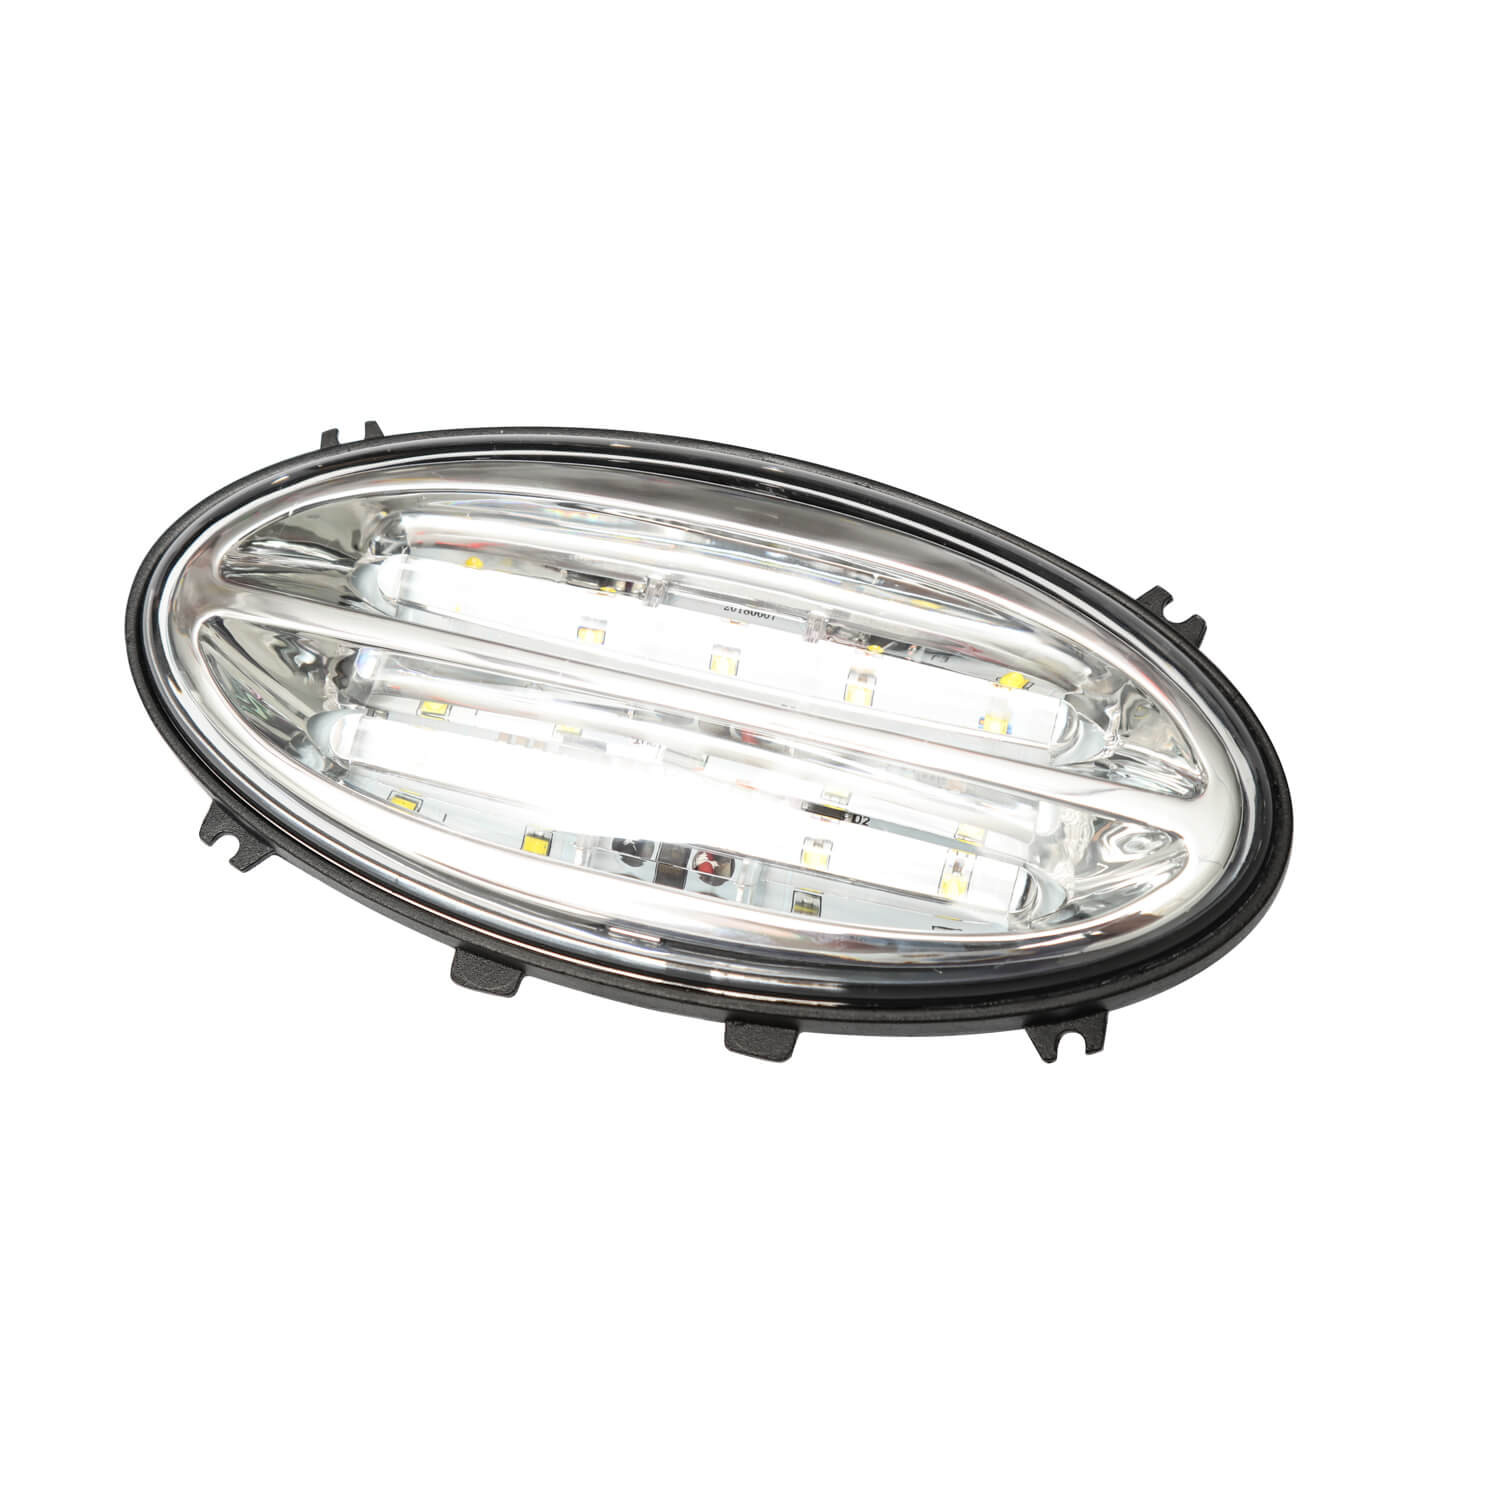 John Deere Oval Led Replacement Flood Lamp